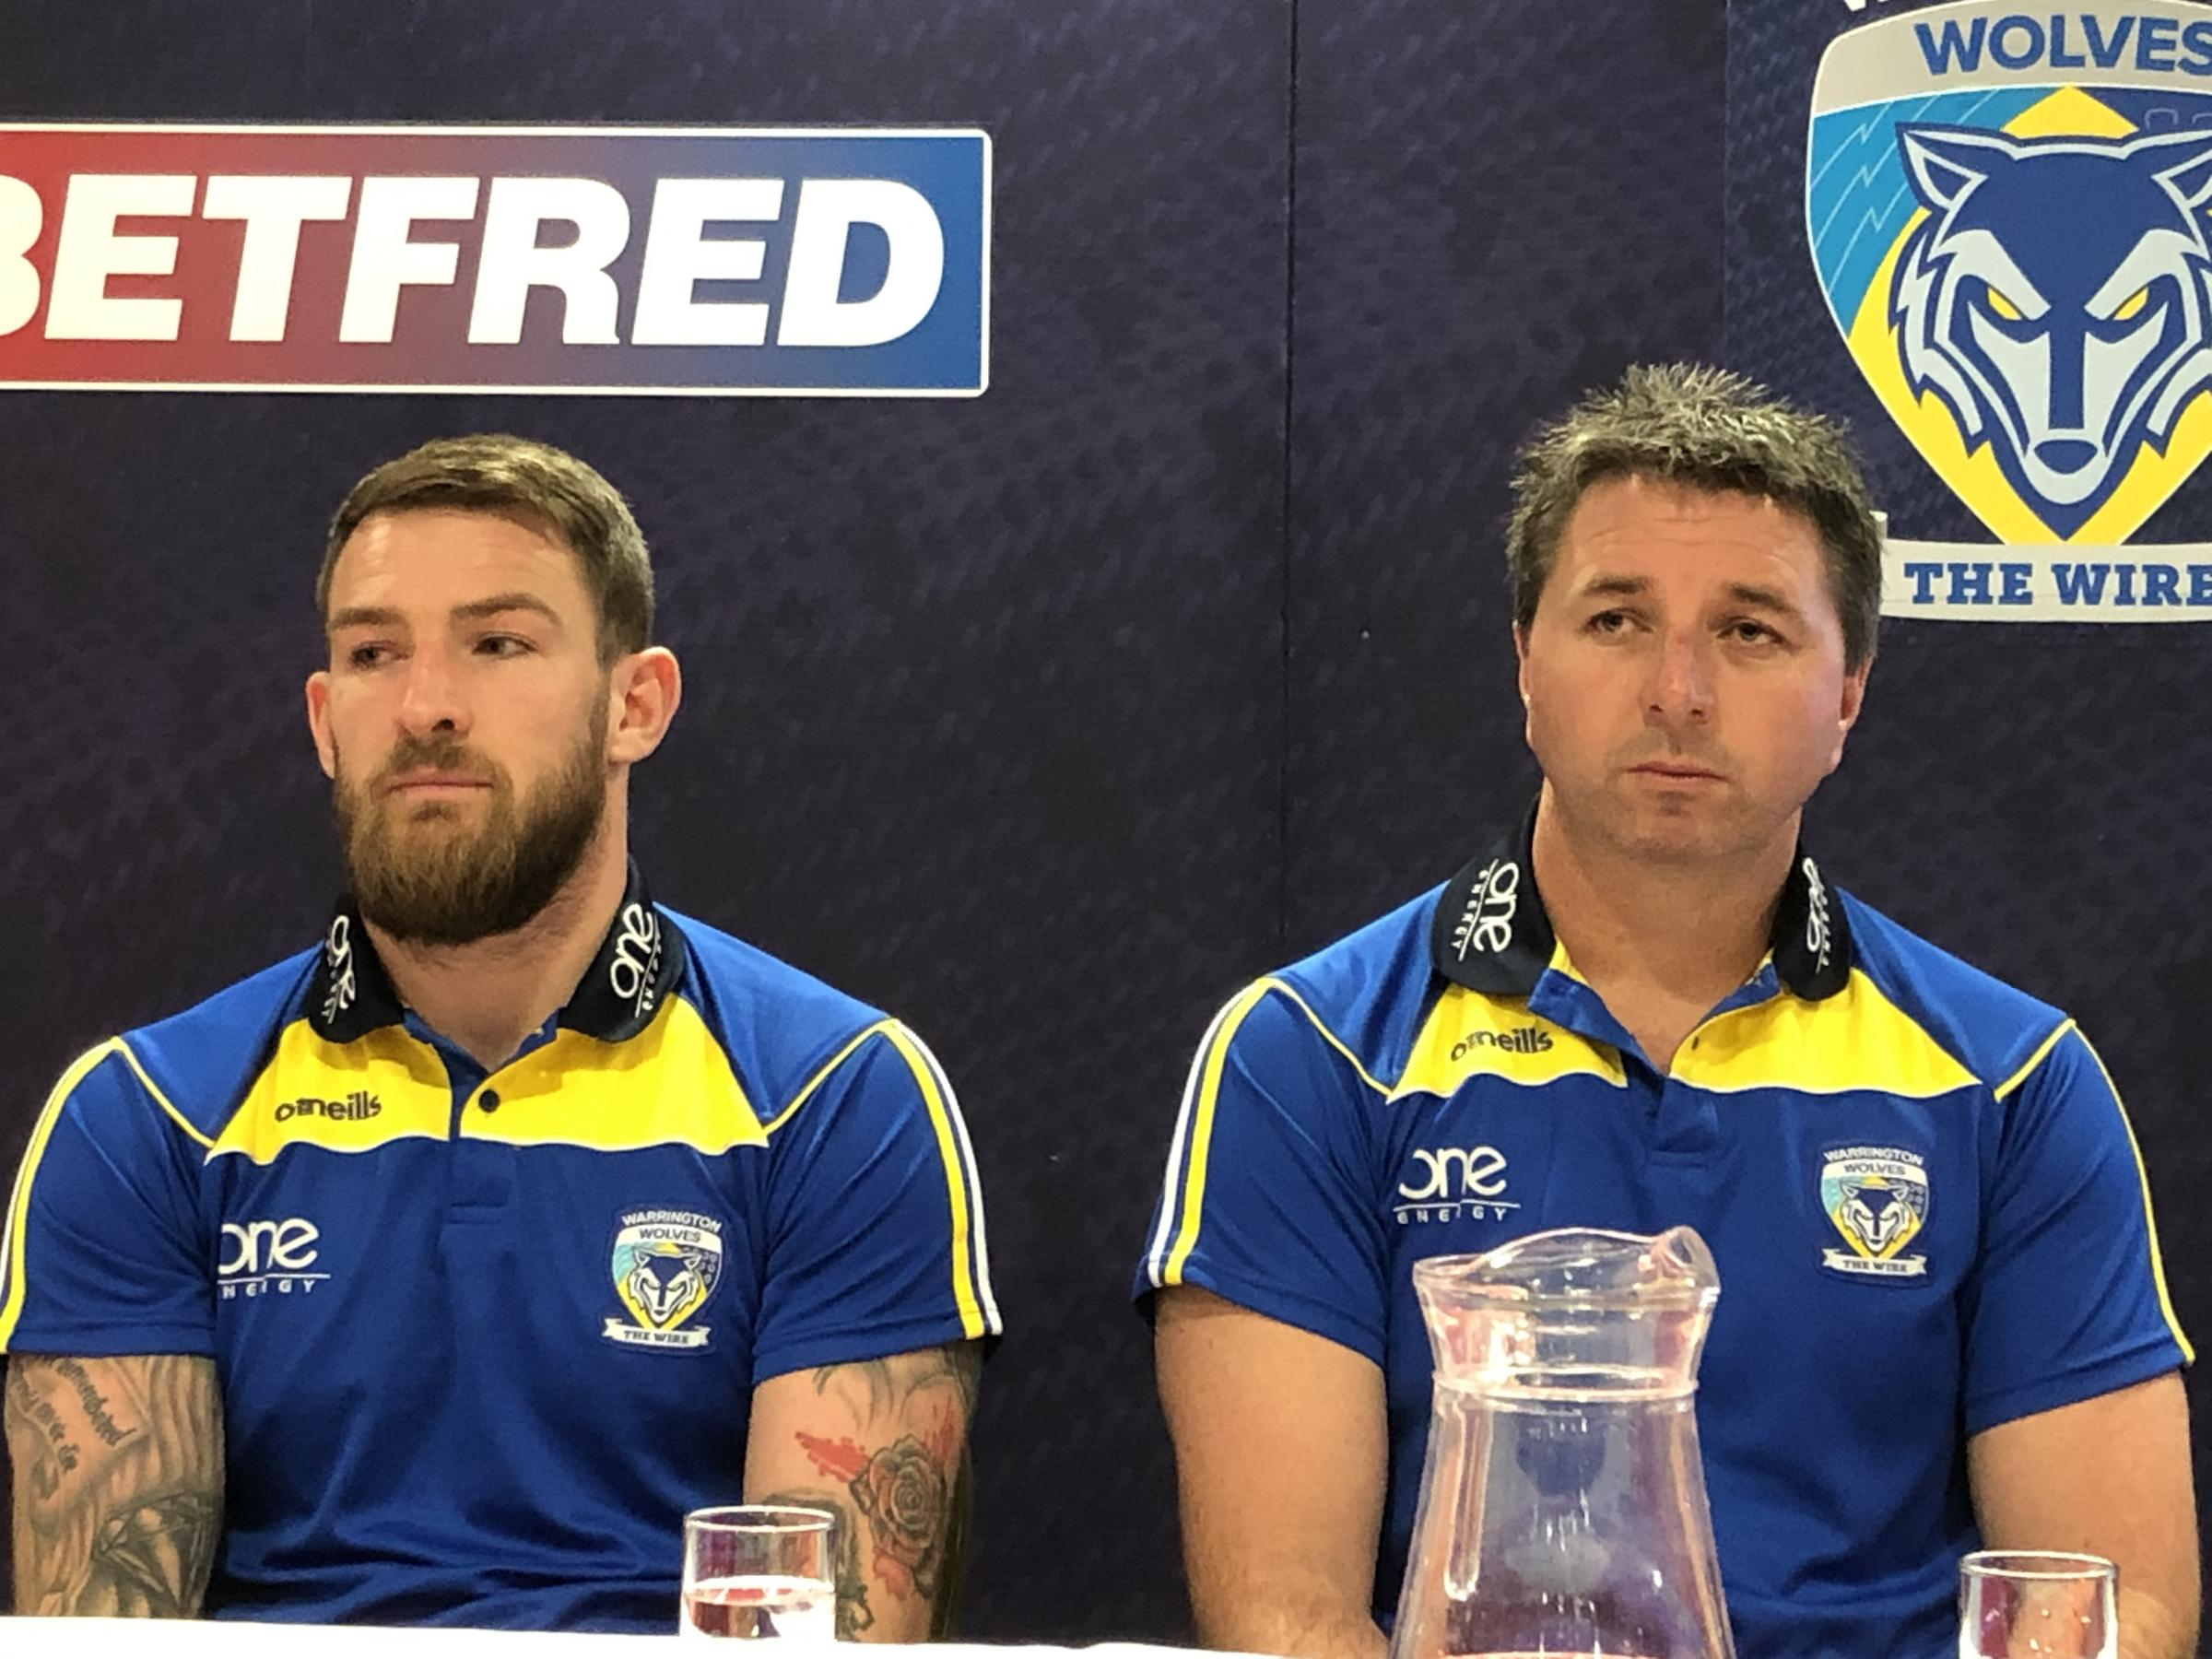 Steve Price at Tuesday's joint press conference previewing The Wire's clash with St Helens